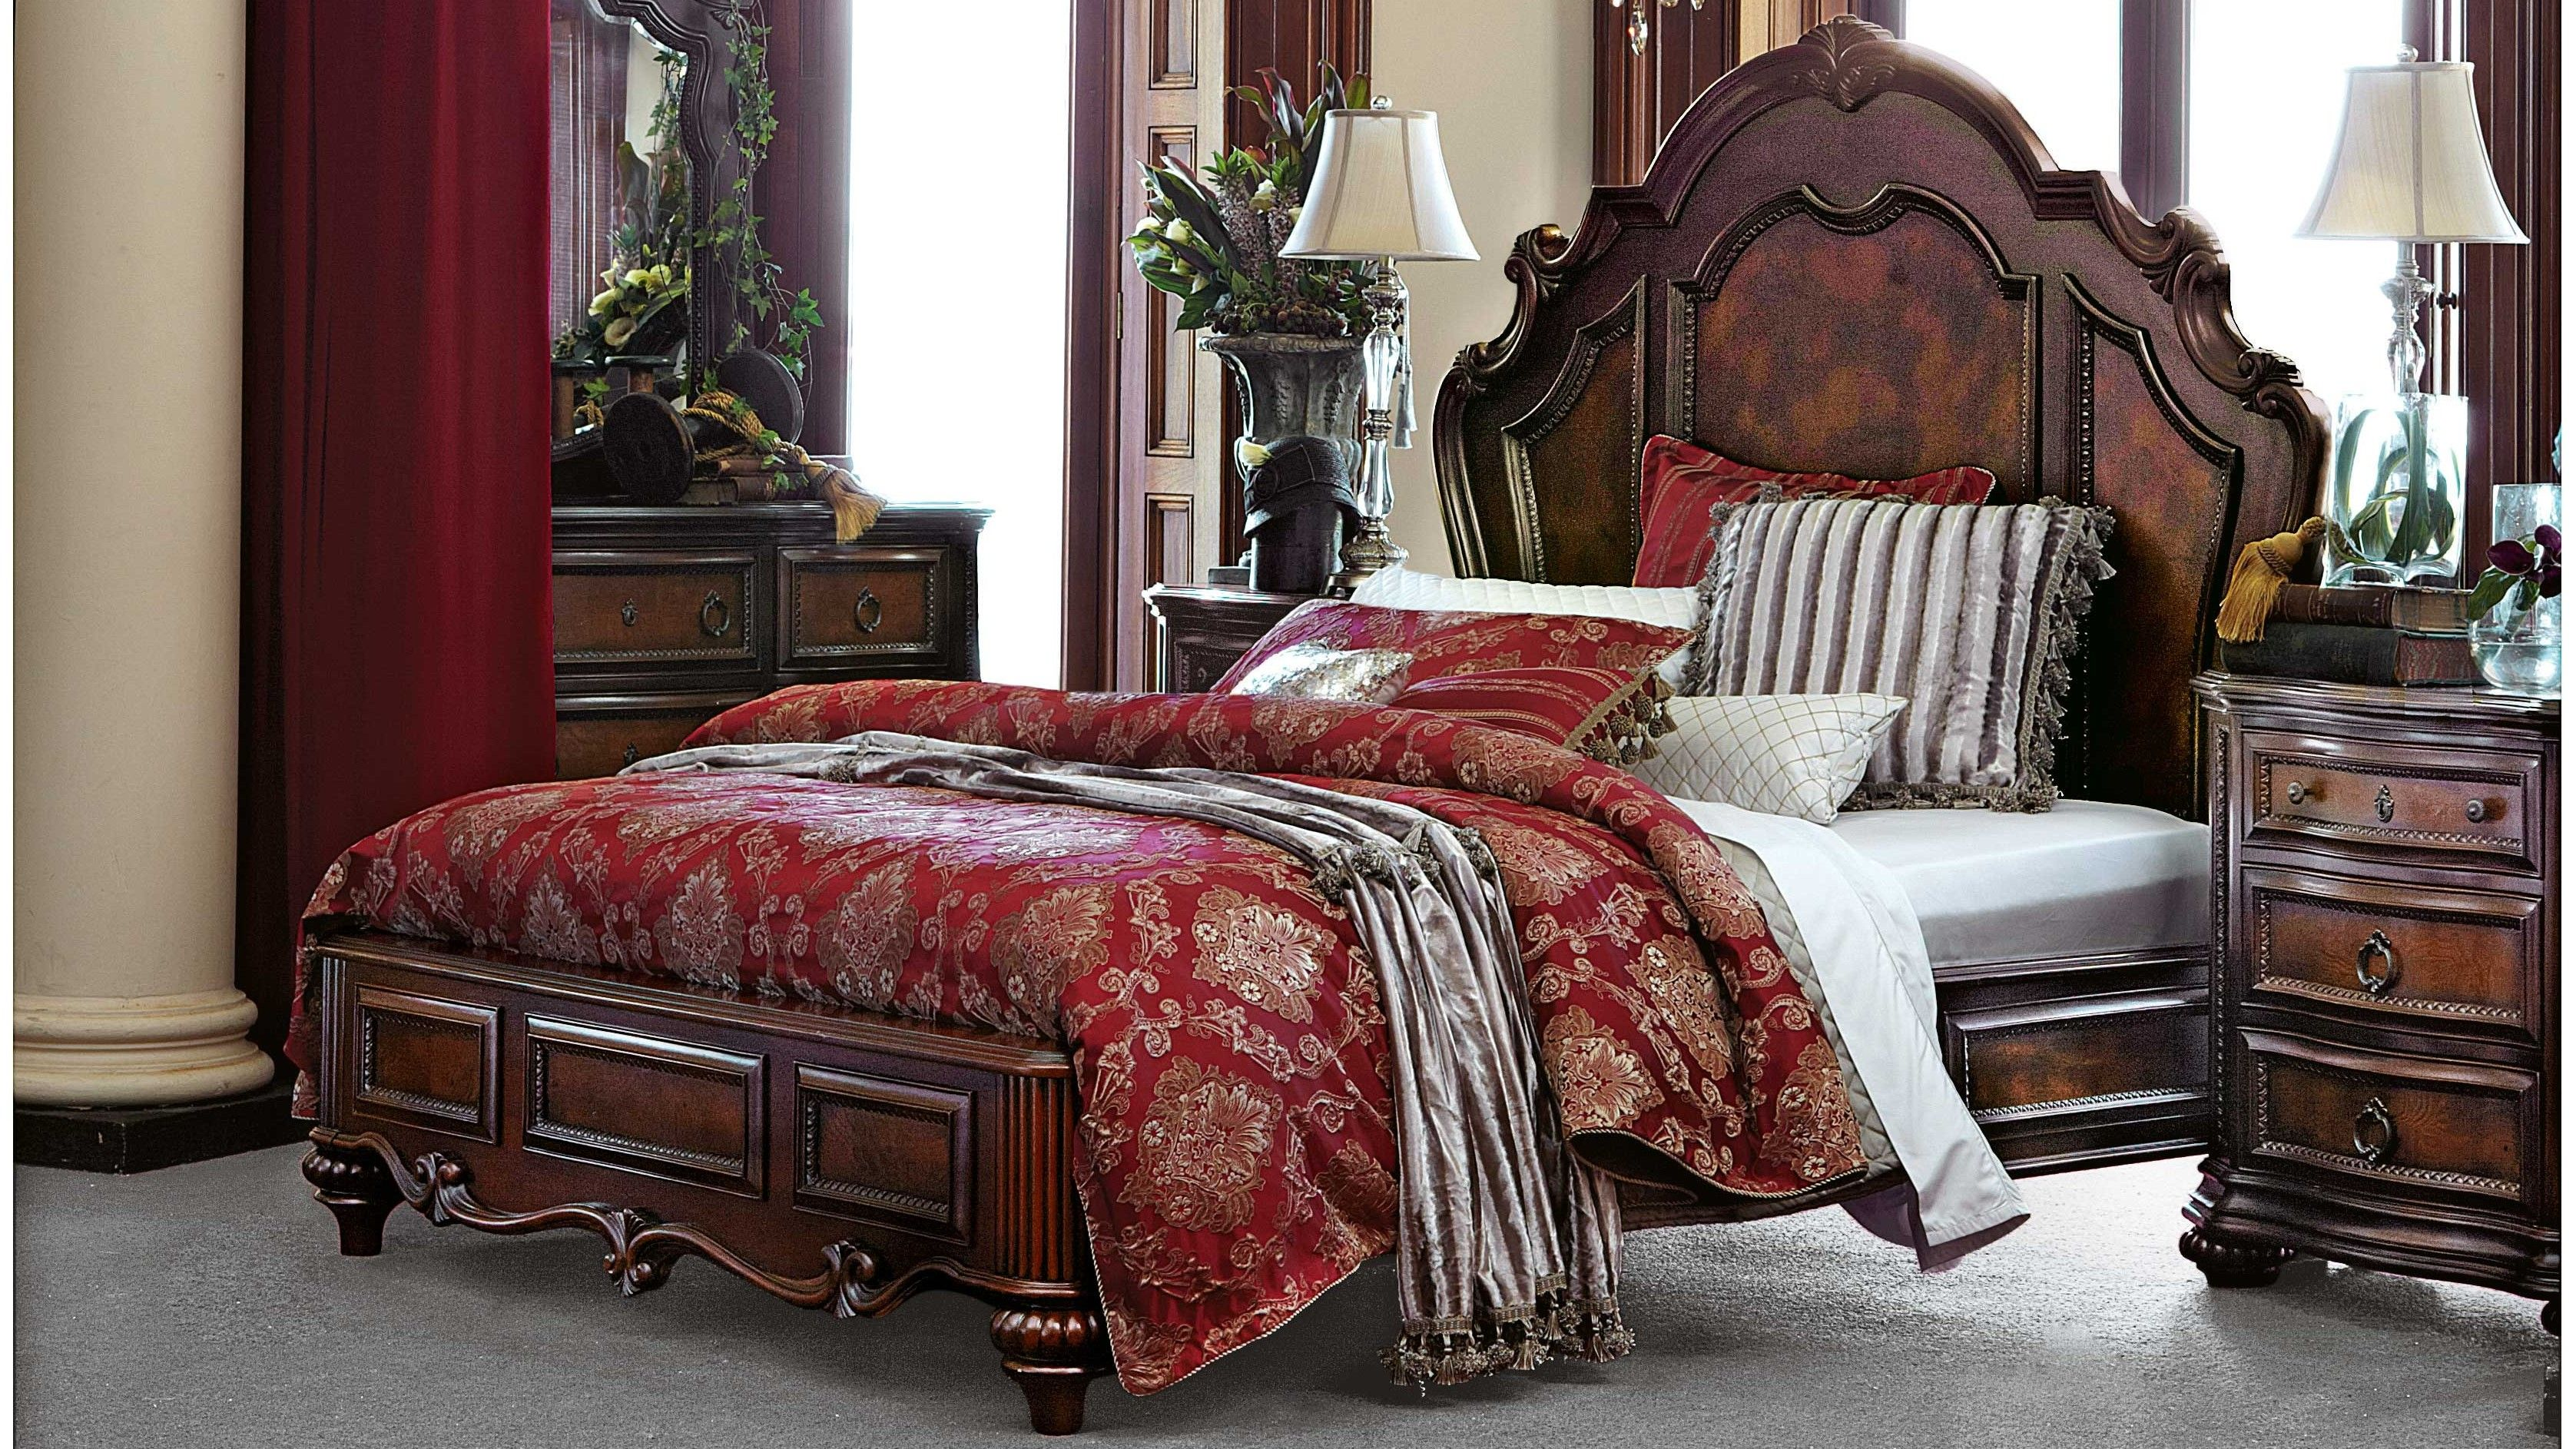 prenzo queen bed harvey norman house bedroom bed queen beds rh pinterest com Harvey Norman NZ Harvey Norman UK